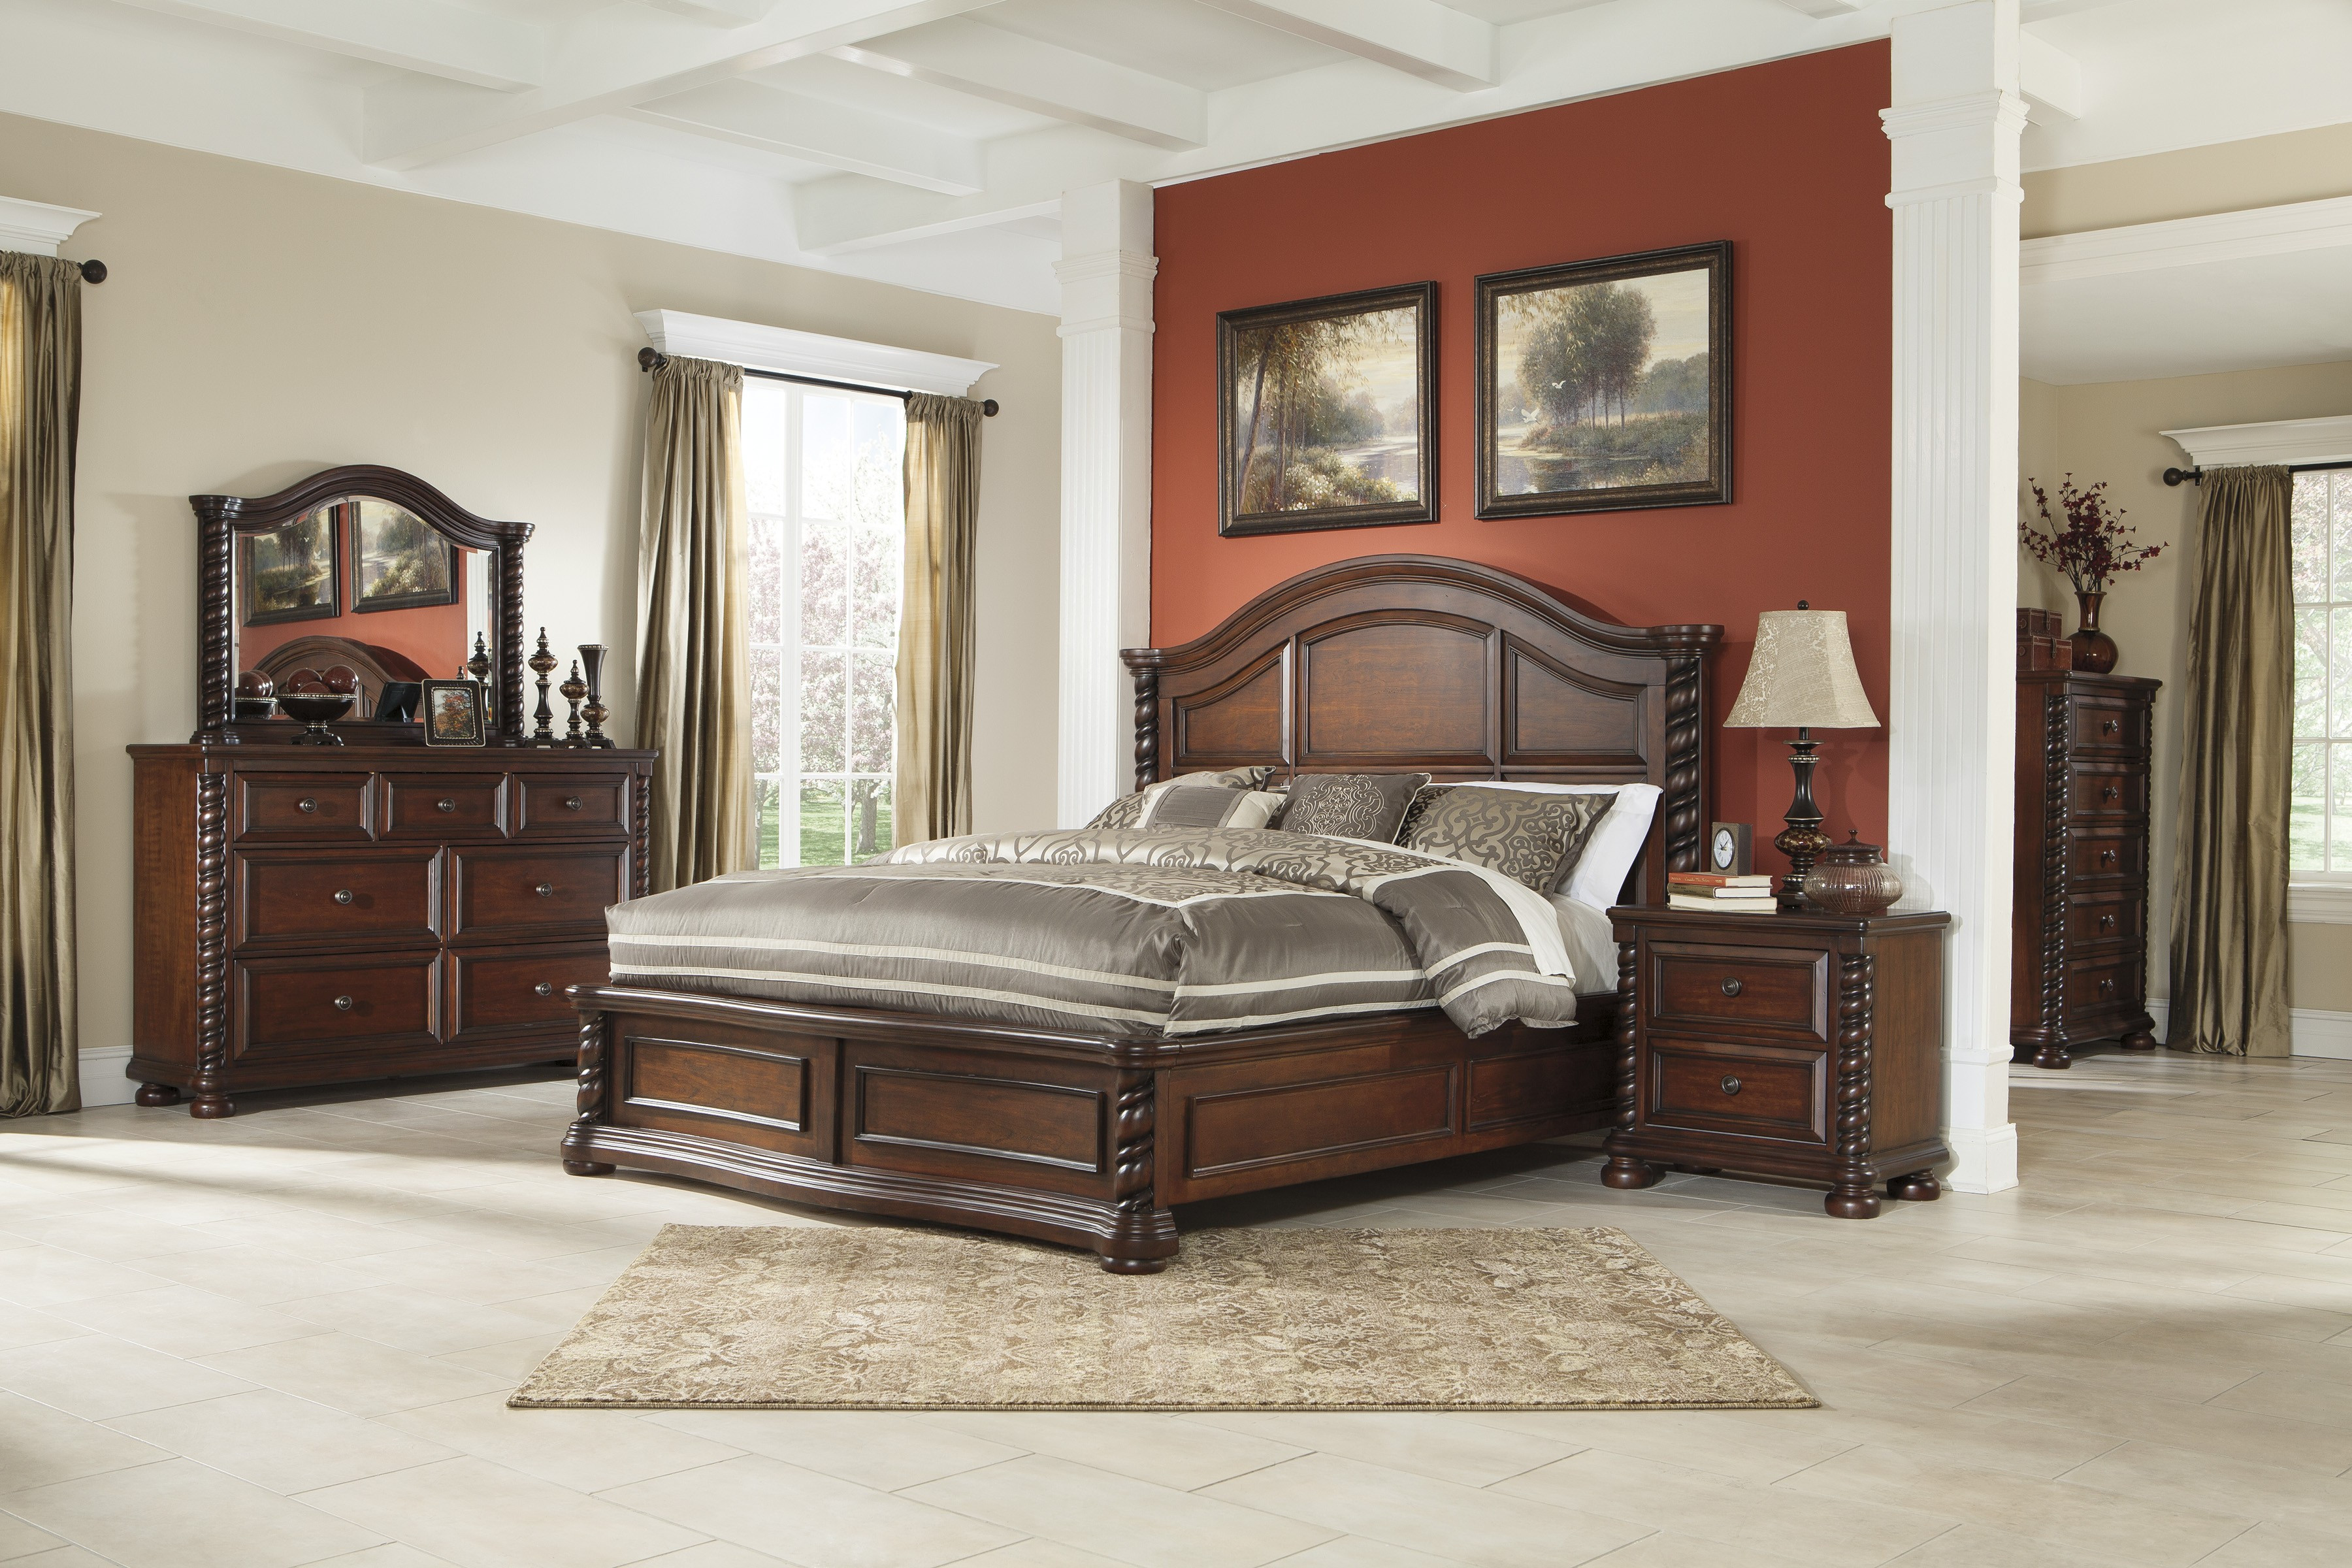 Best ideas about Ashley Bedroom Sets . Save or Pin Brennville Bedroom Set by Ashley Furniture Depot Red Now.